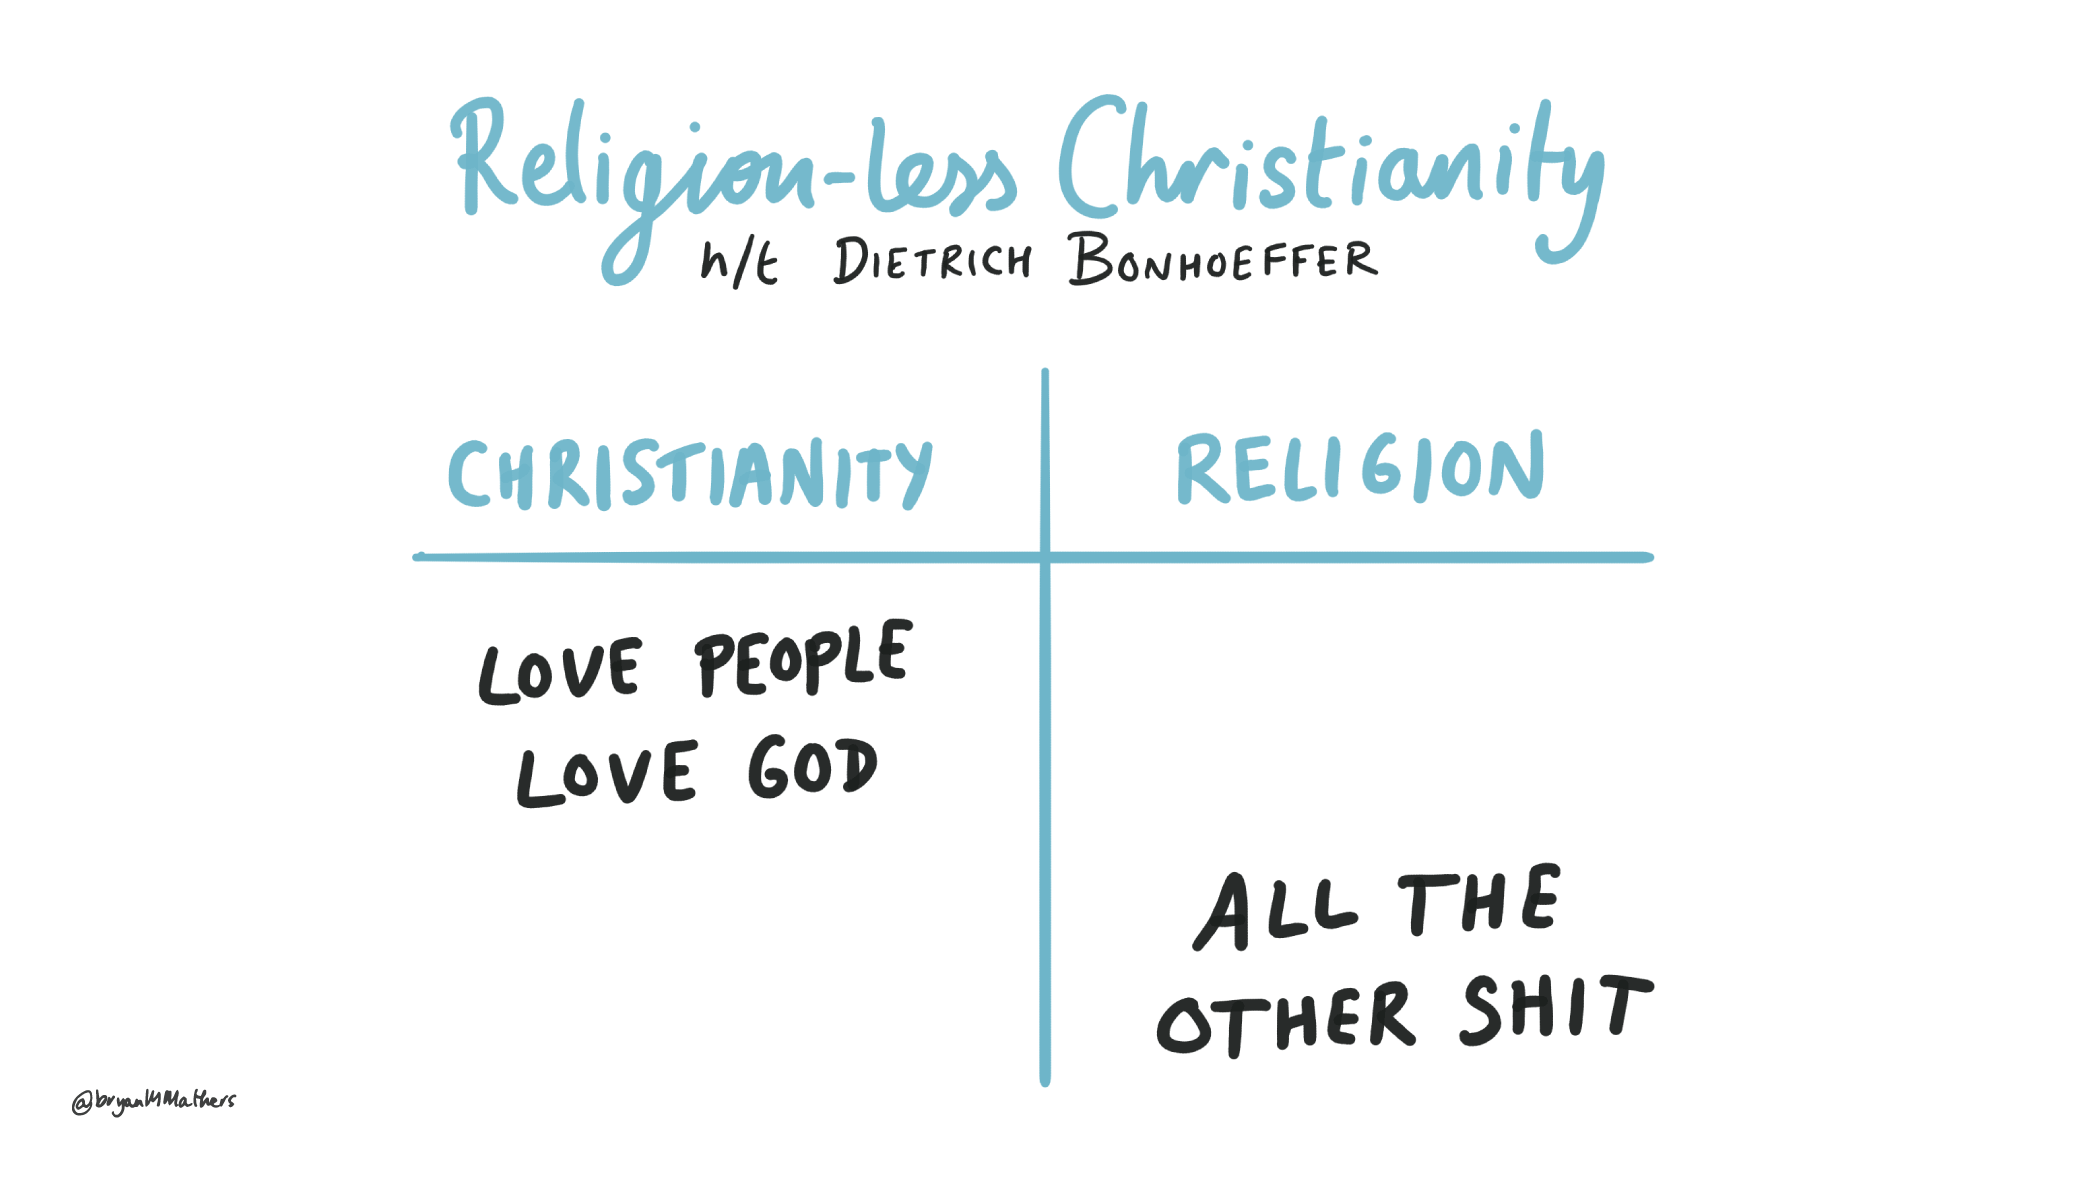 Religion-less Christianity